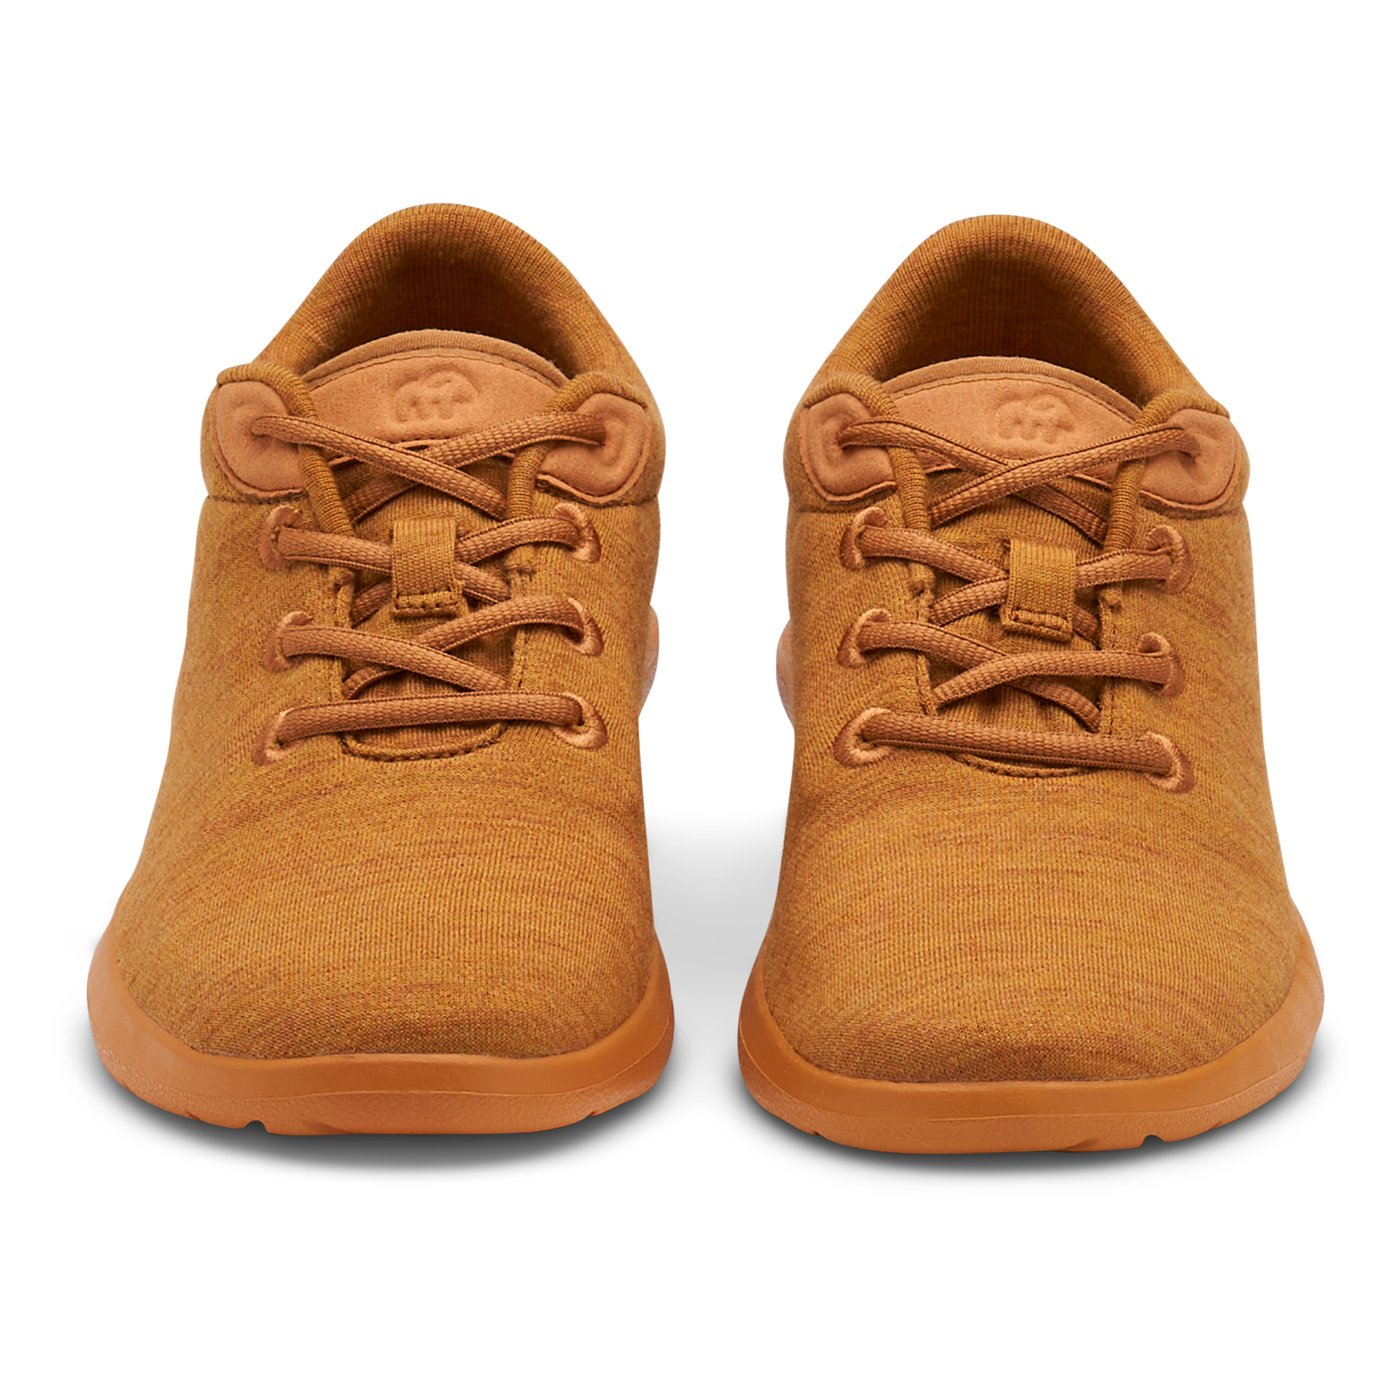 Men's Lace-Ups Ochre